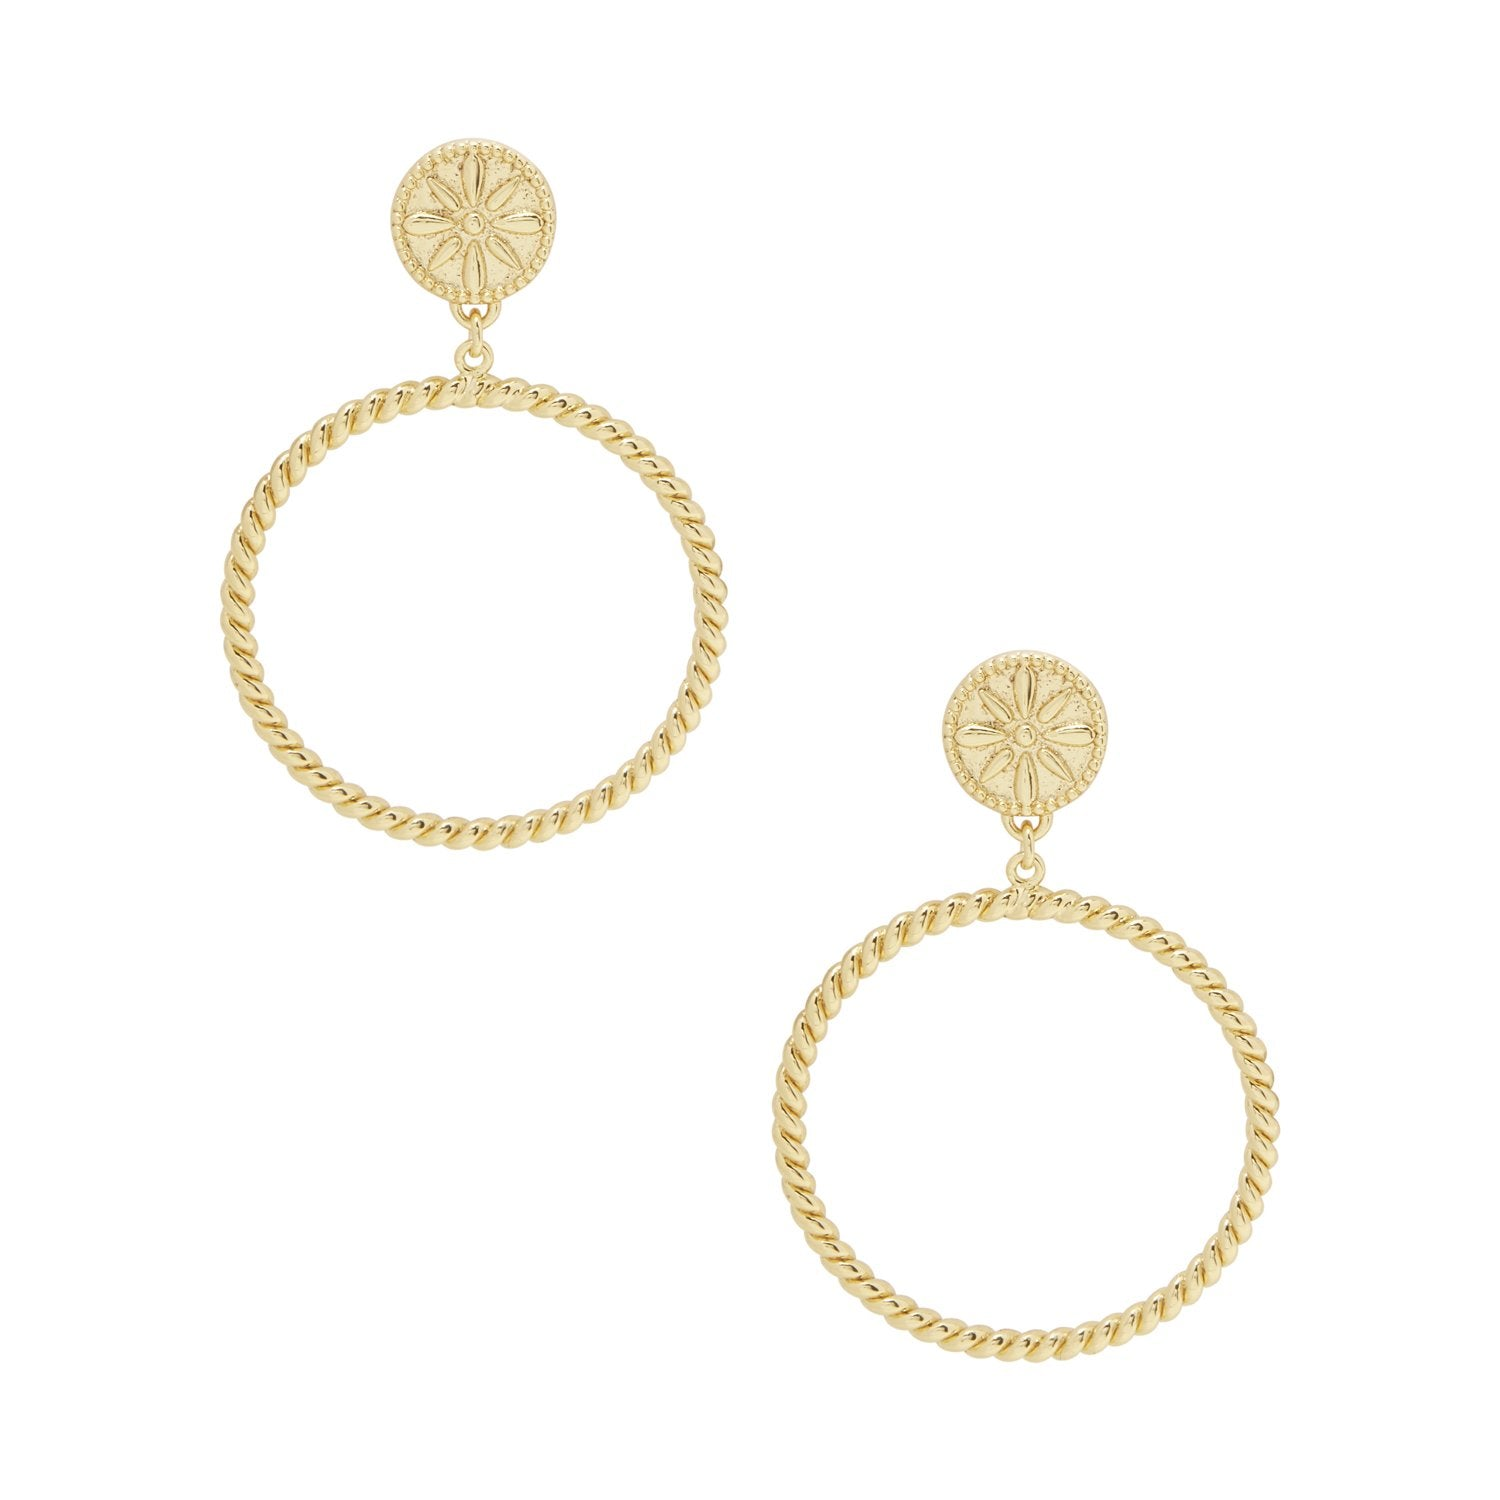 "5/16"" stud diameter 1"" hoop diameter 1 1/2"" Drop Post back 18k gold plated brass Avoid contact with anything containing derivatives of alcohol"